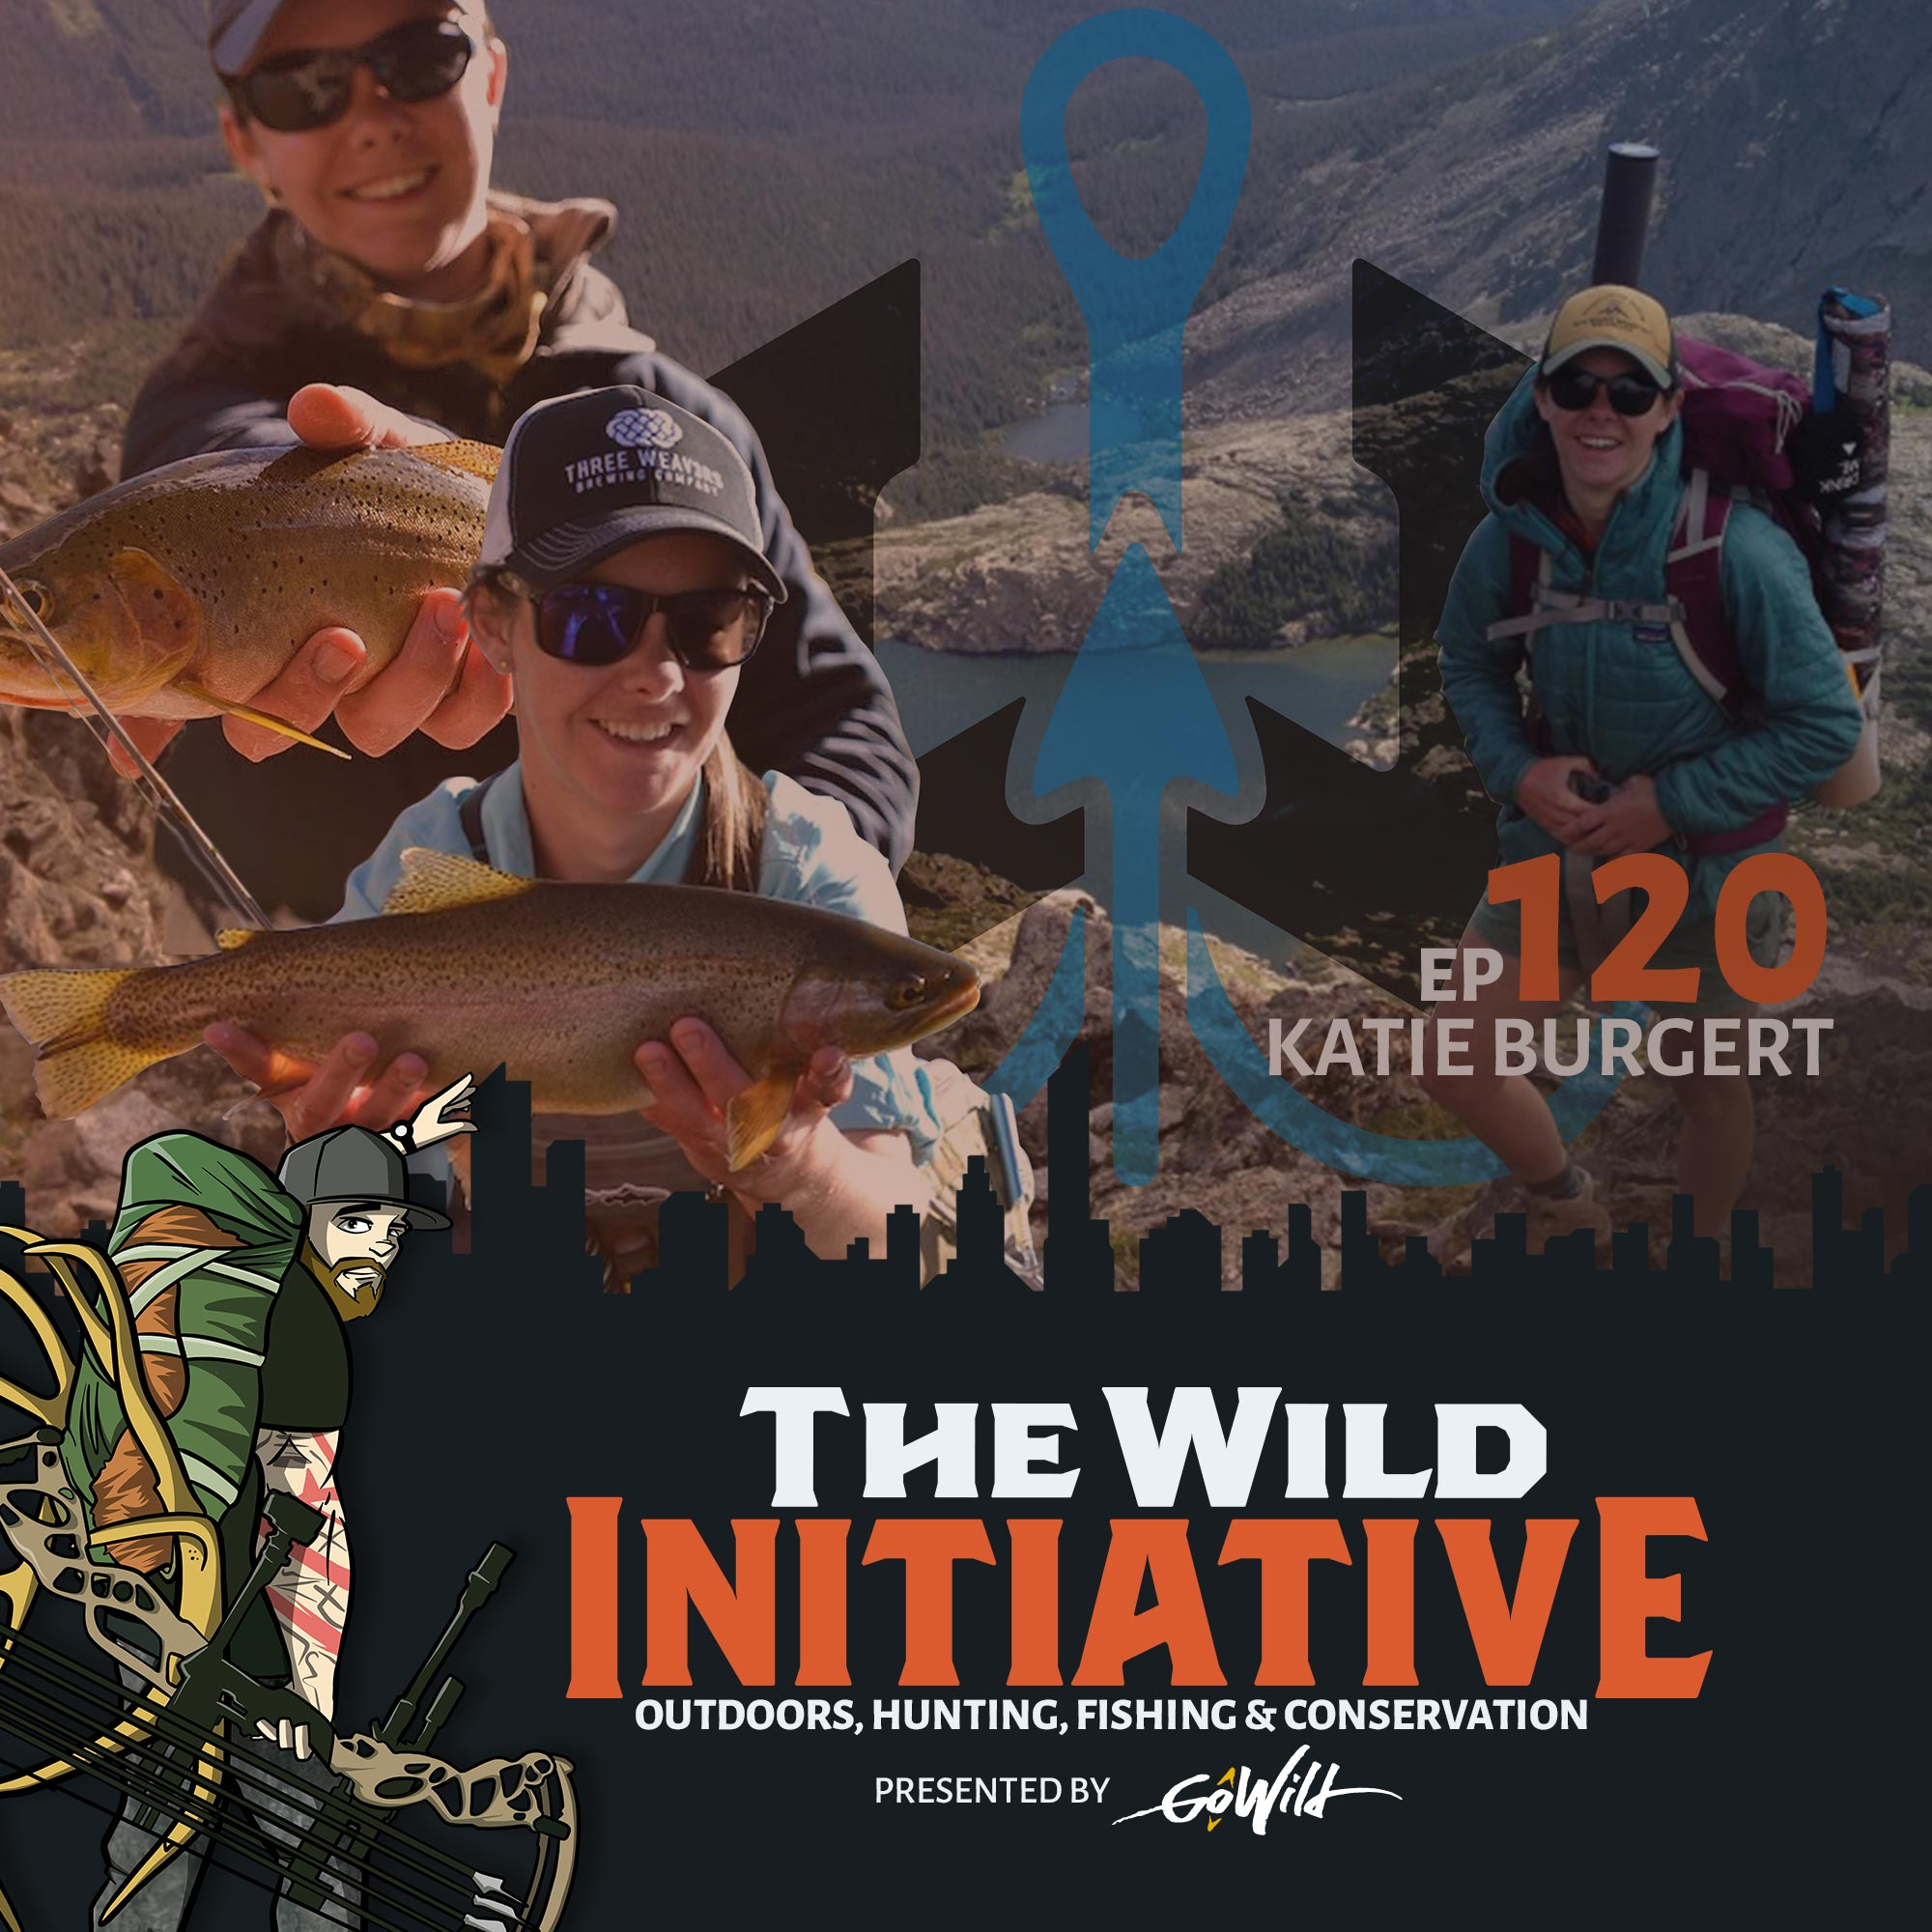 Ep 120 Katie Burgert - The Wild Initiative - Outdoors, Hunting, Fishing & Conservation